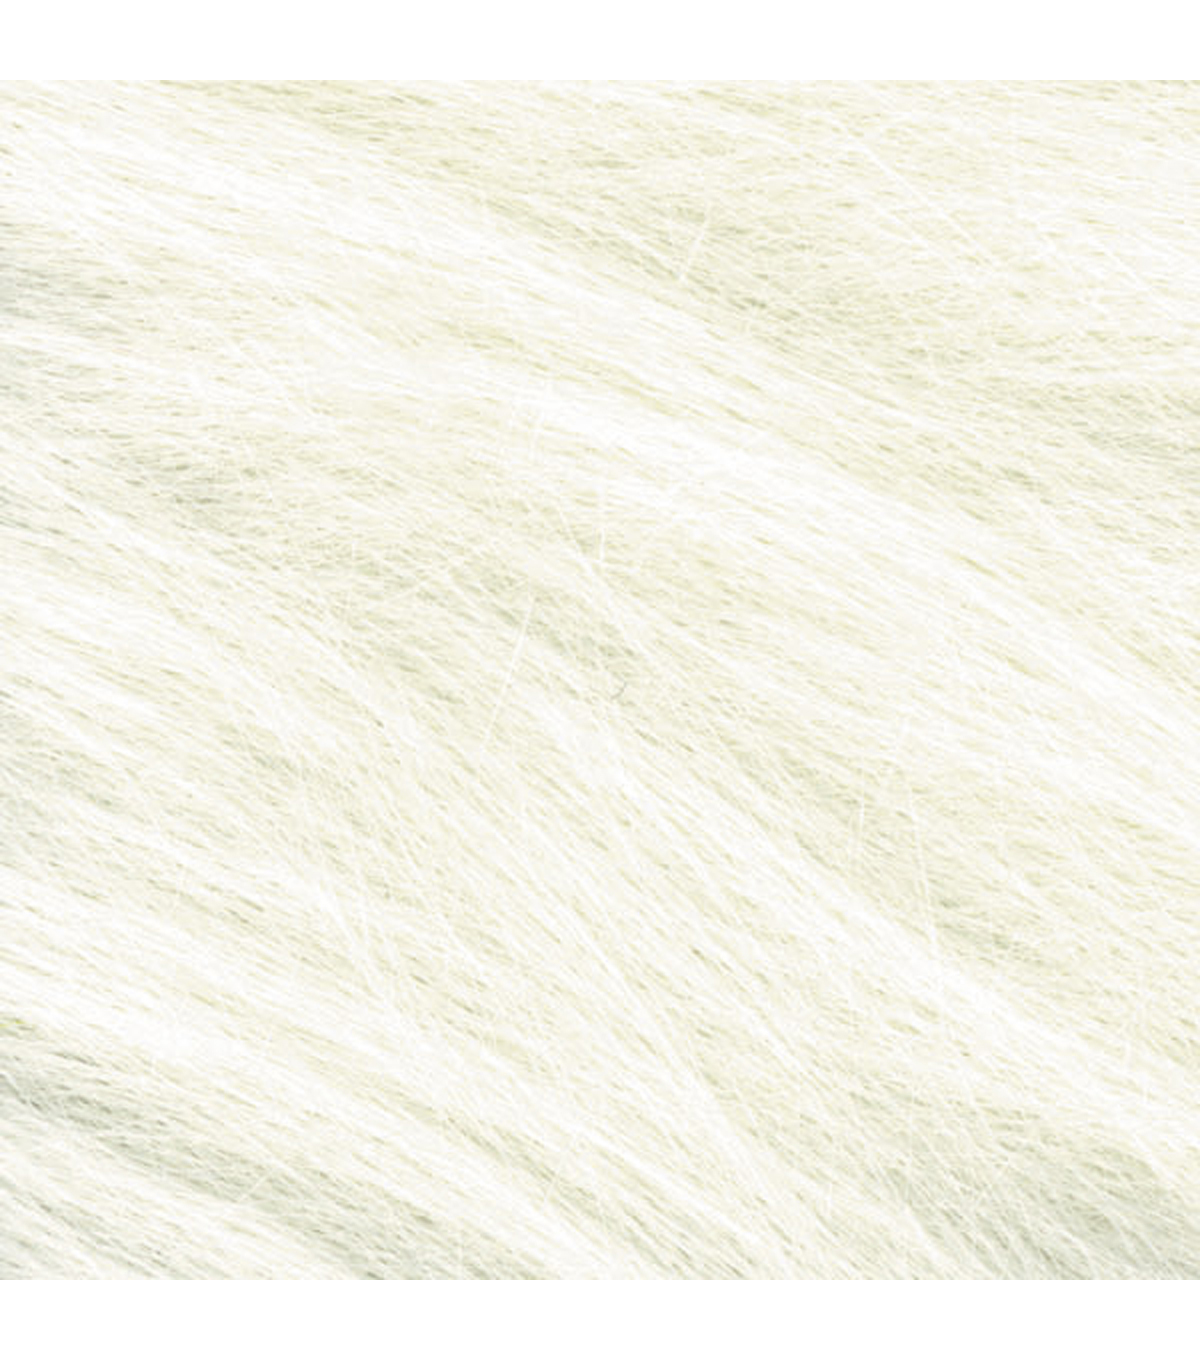 9 x 12 inch Craft Fur-Long Pile